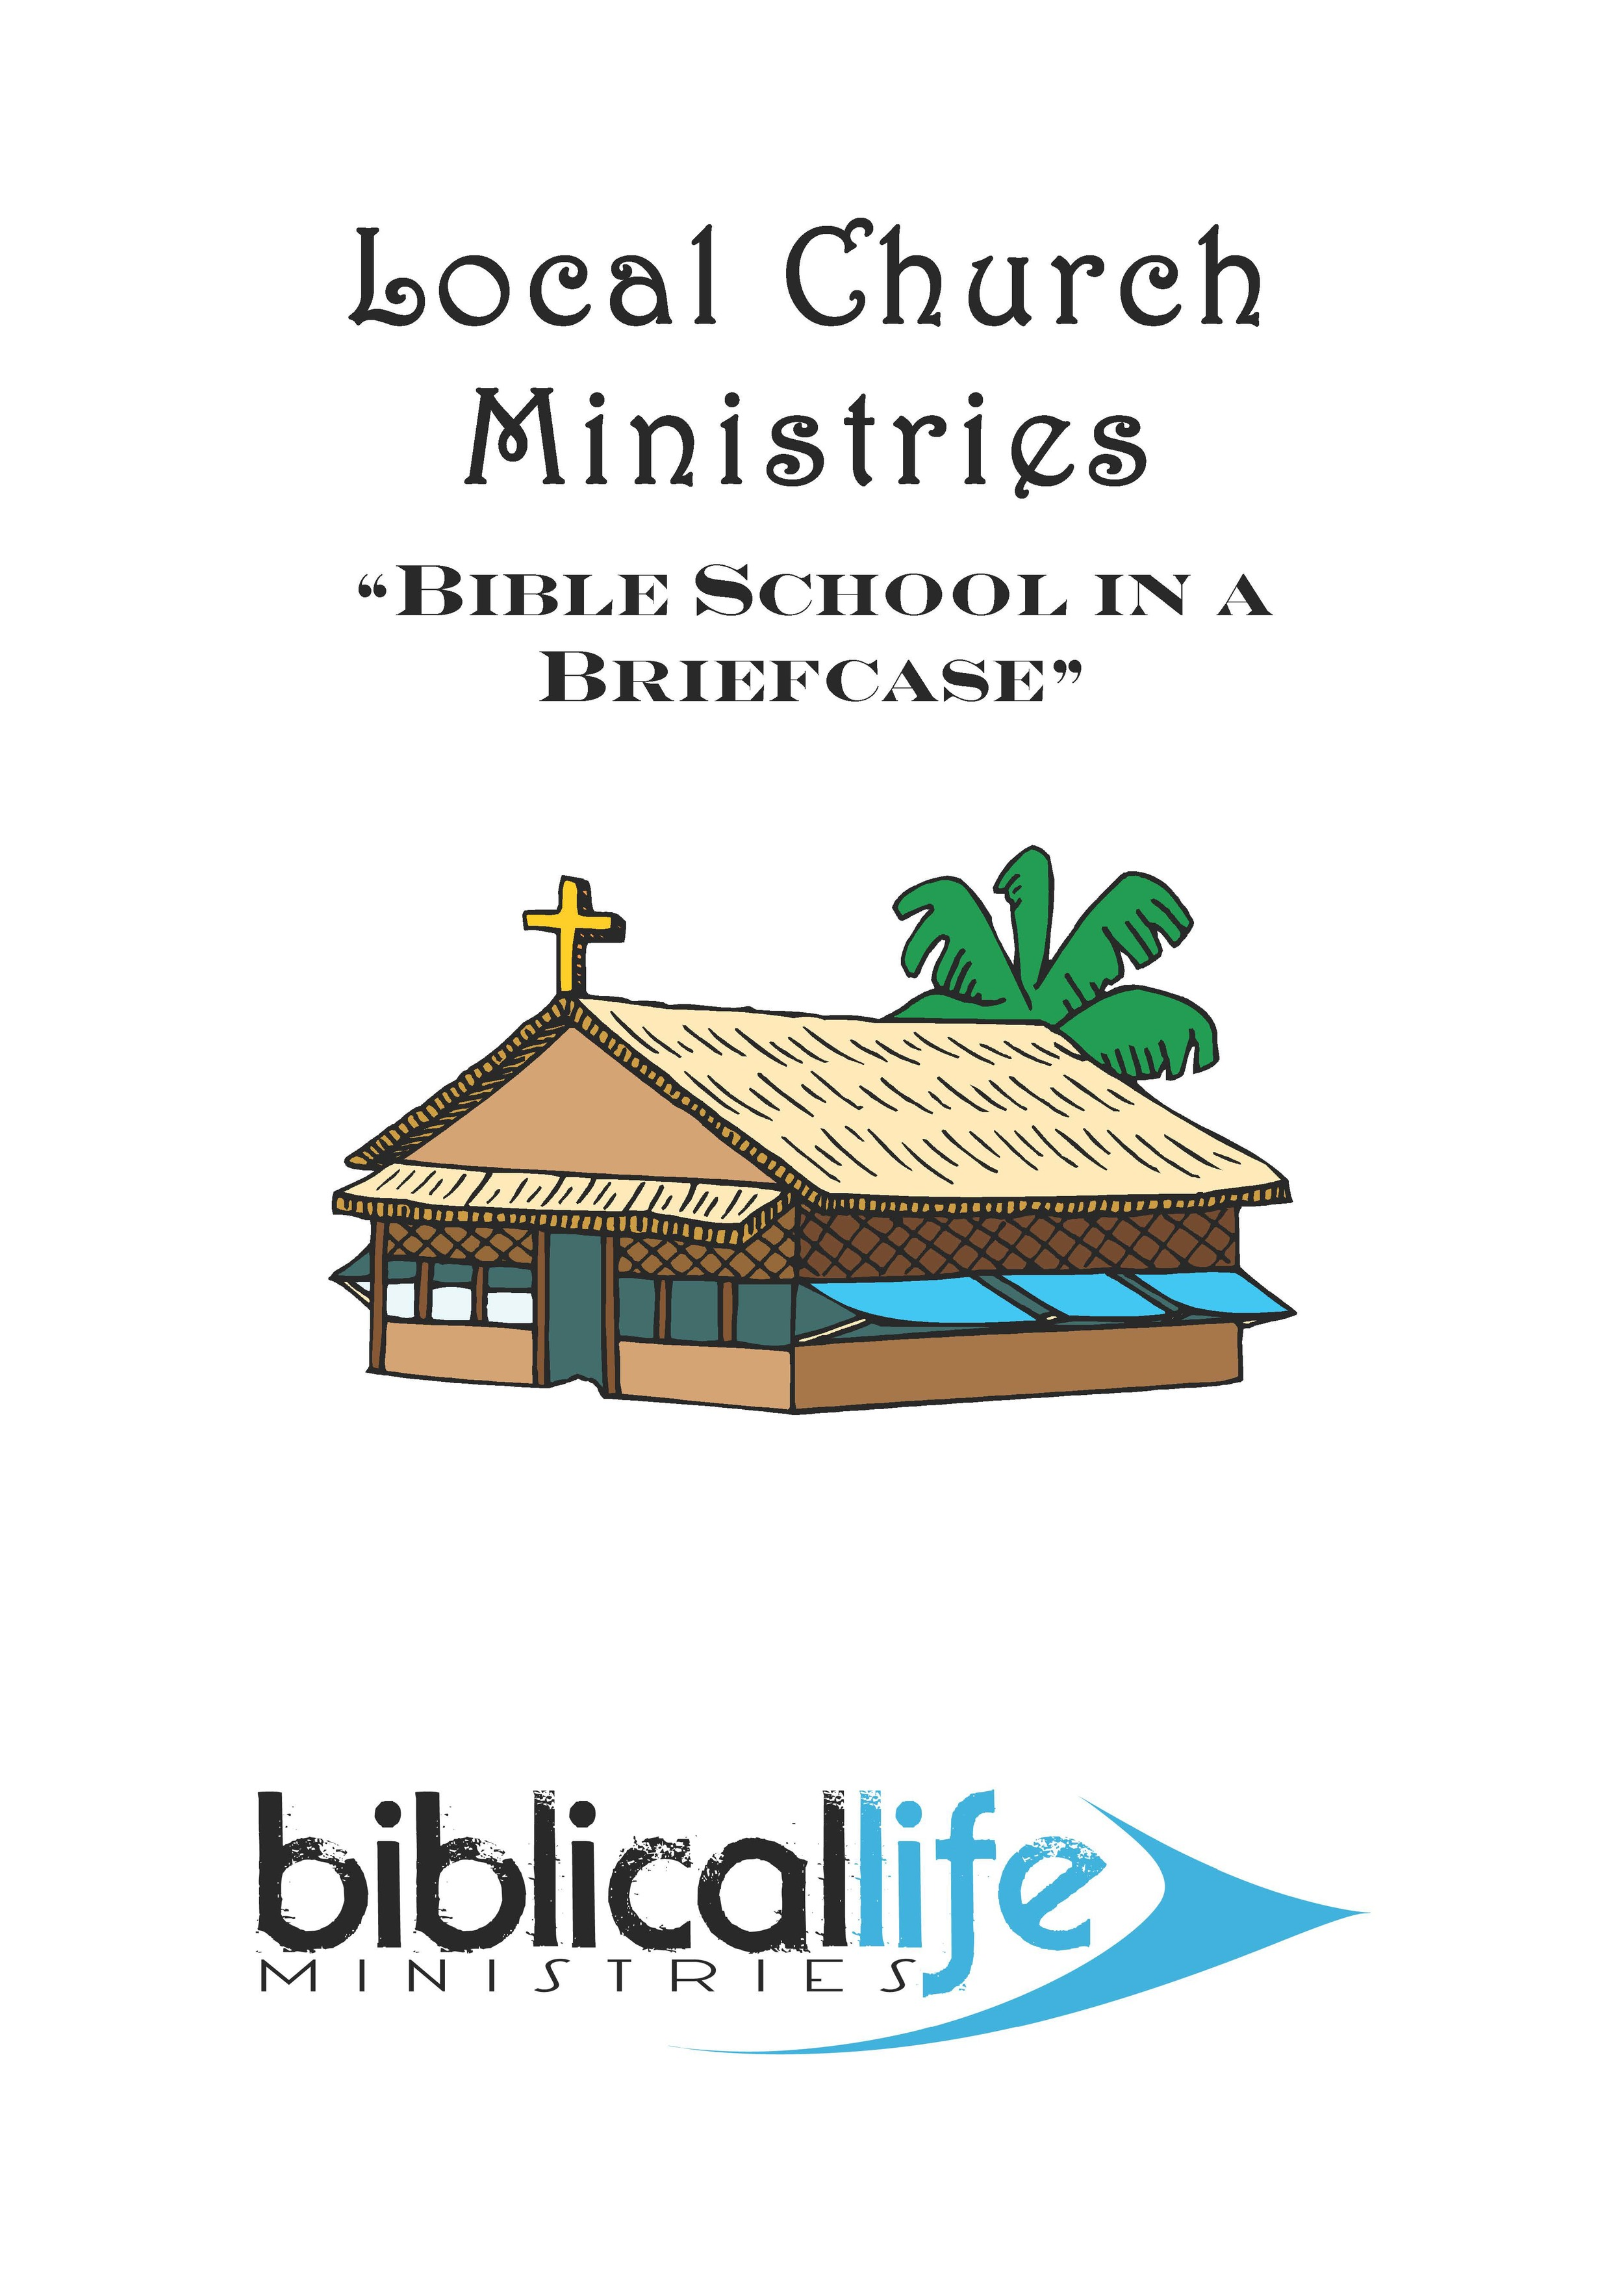 Local Church Ministries  : This class takes a look at some of the core ministries of the church: Worship, Children's Ministry, Family Ministries, Pulpit Ministries, Gifts of the Holy Spirit, Giving, Evangelism, Missions, with an emphasis on how they can practically and effectively work today. 60 page manual.